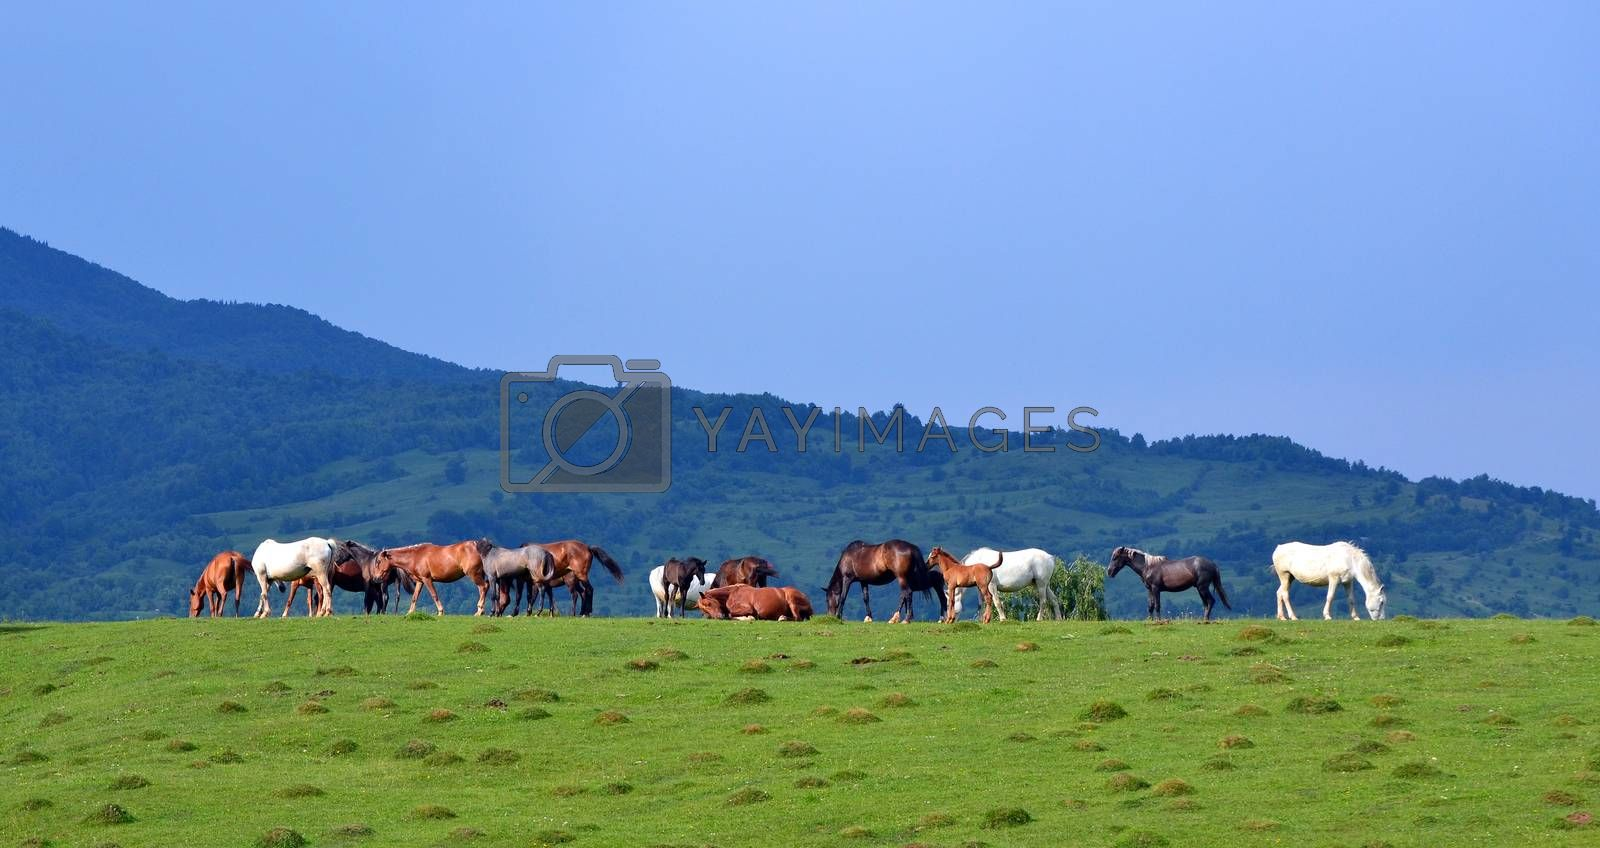 Countryside landscape with herd of horses